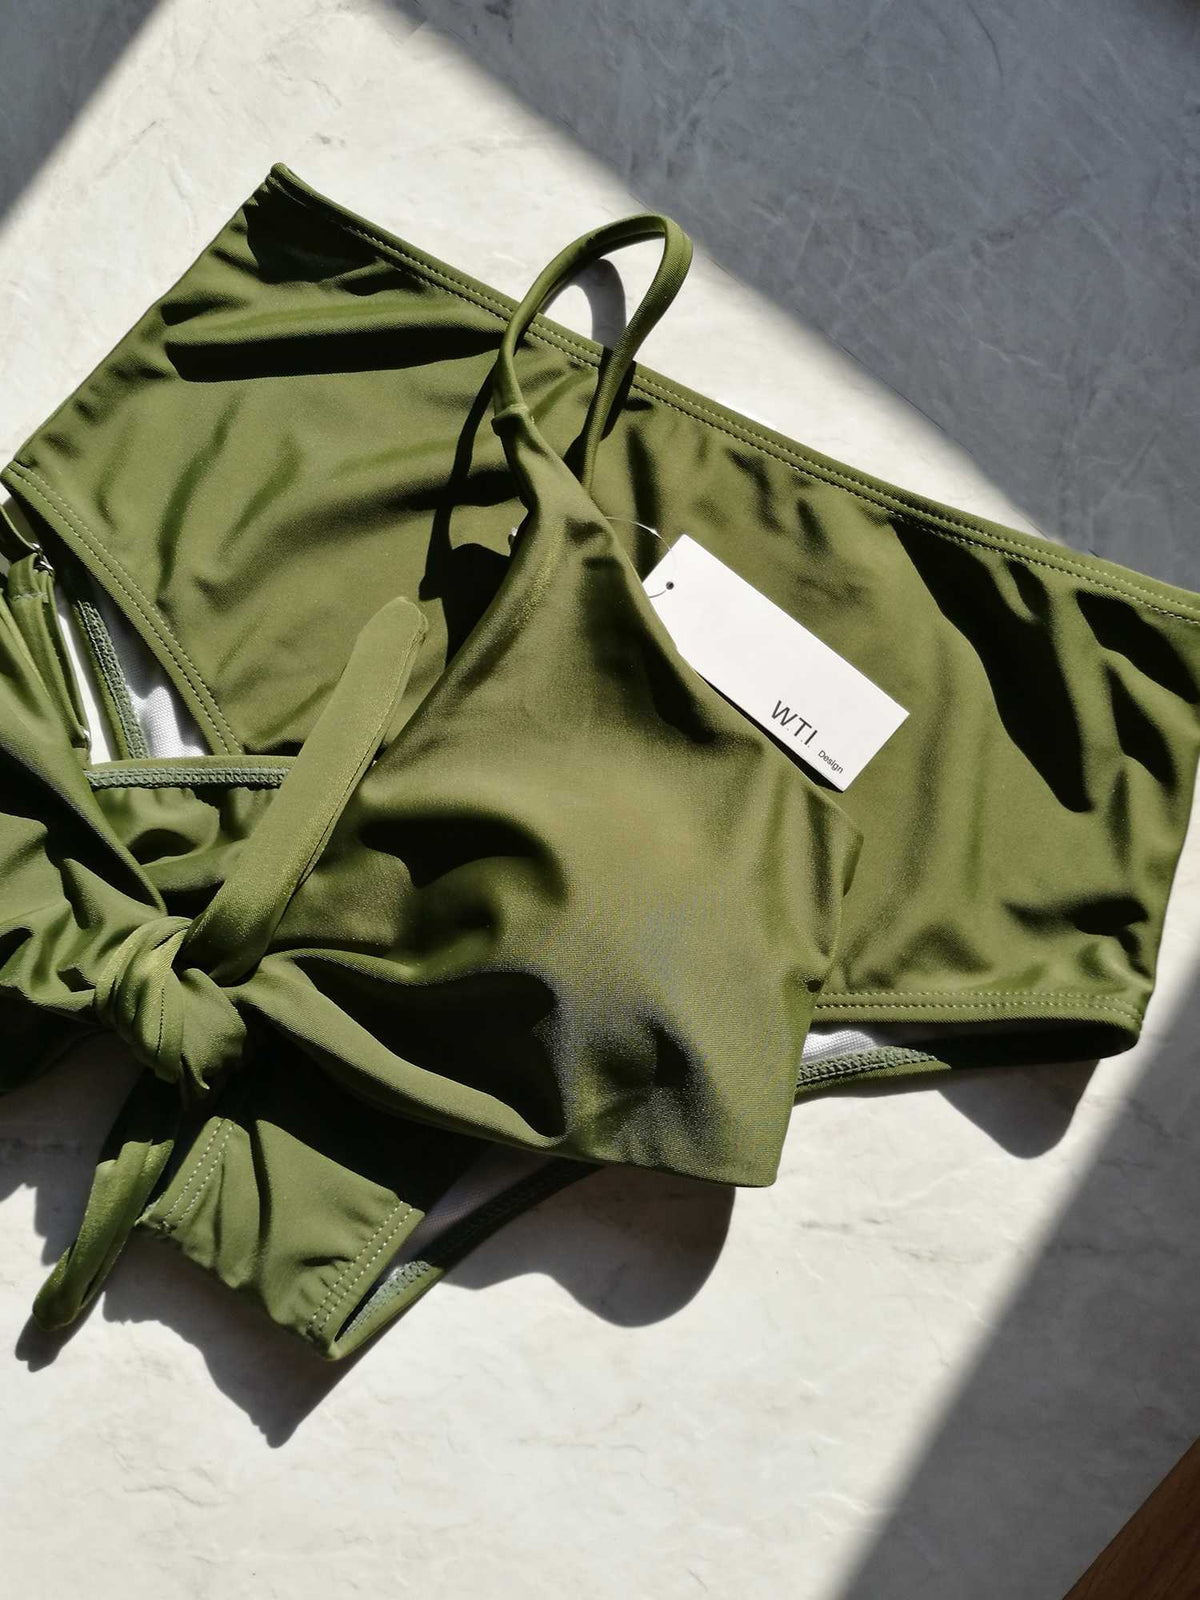 Front Tie Bow High Waist High Cut Bikini Set - worthtryit.com